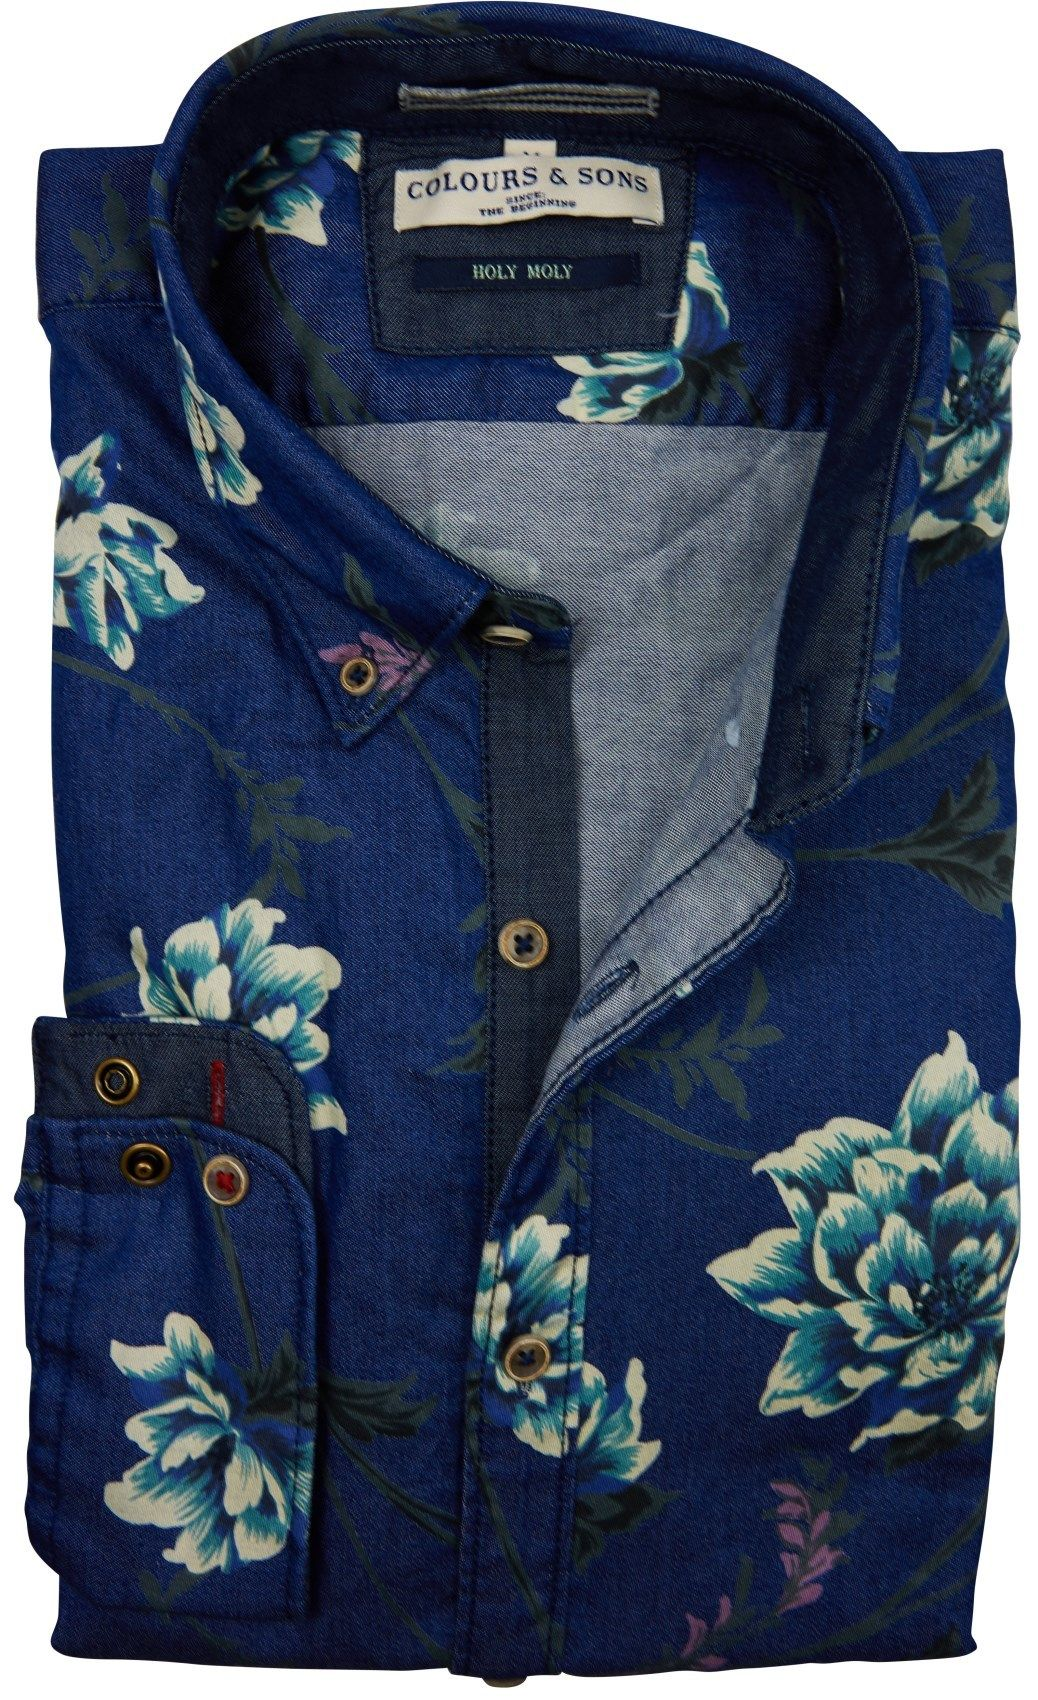 Mannen Blouse Of Overhemd.Colours Sons Herenmode Blouse Herenmode Overhemd